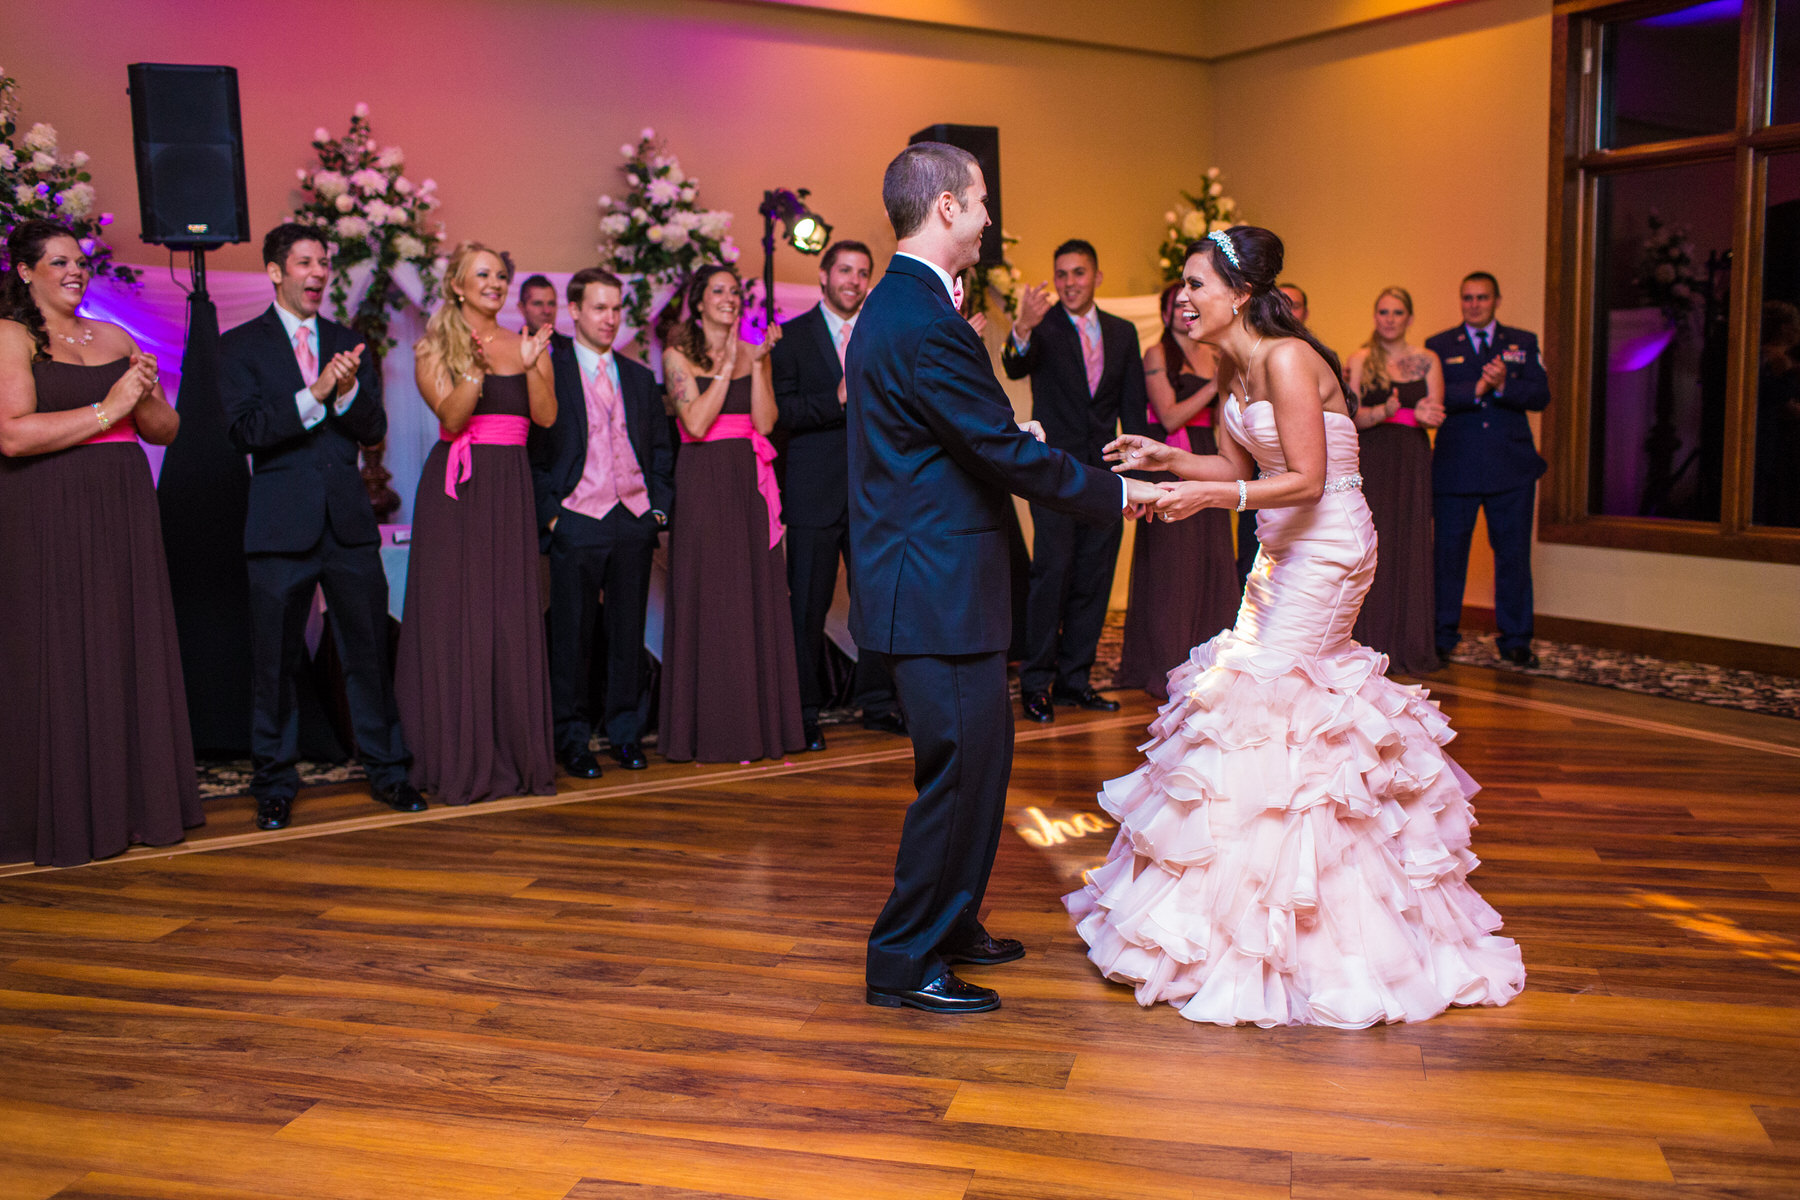 The bride and groom dancing at an indoor reception at Stroudsmoor Country Inn by Washington DC Wedding Photographer Adam Mason